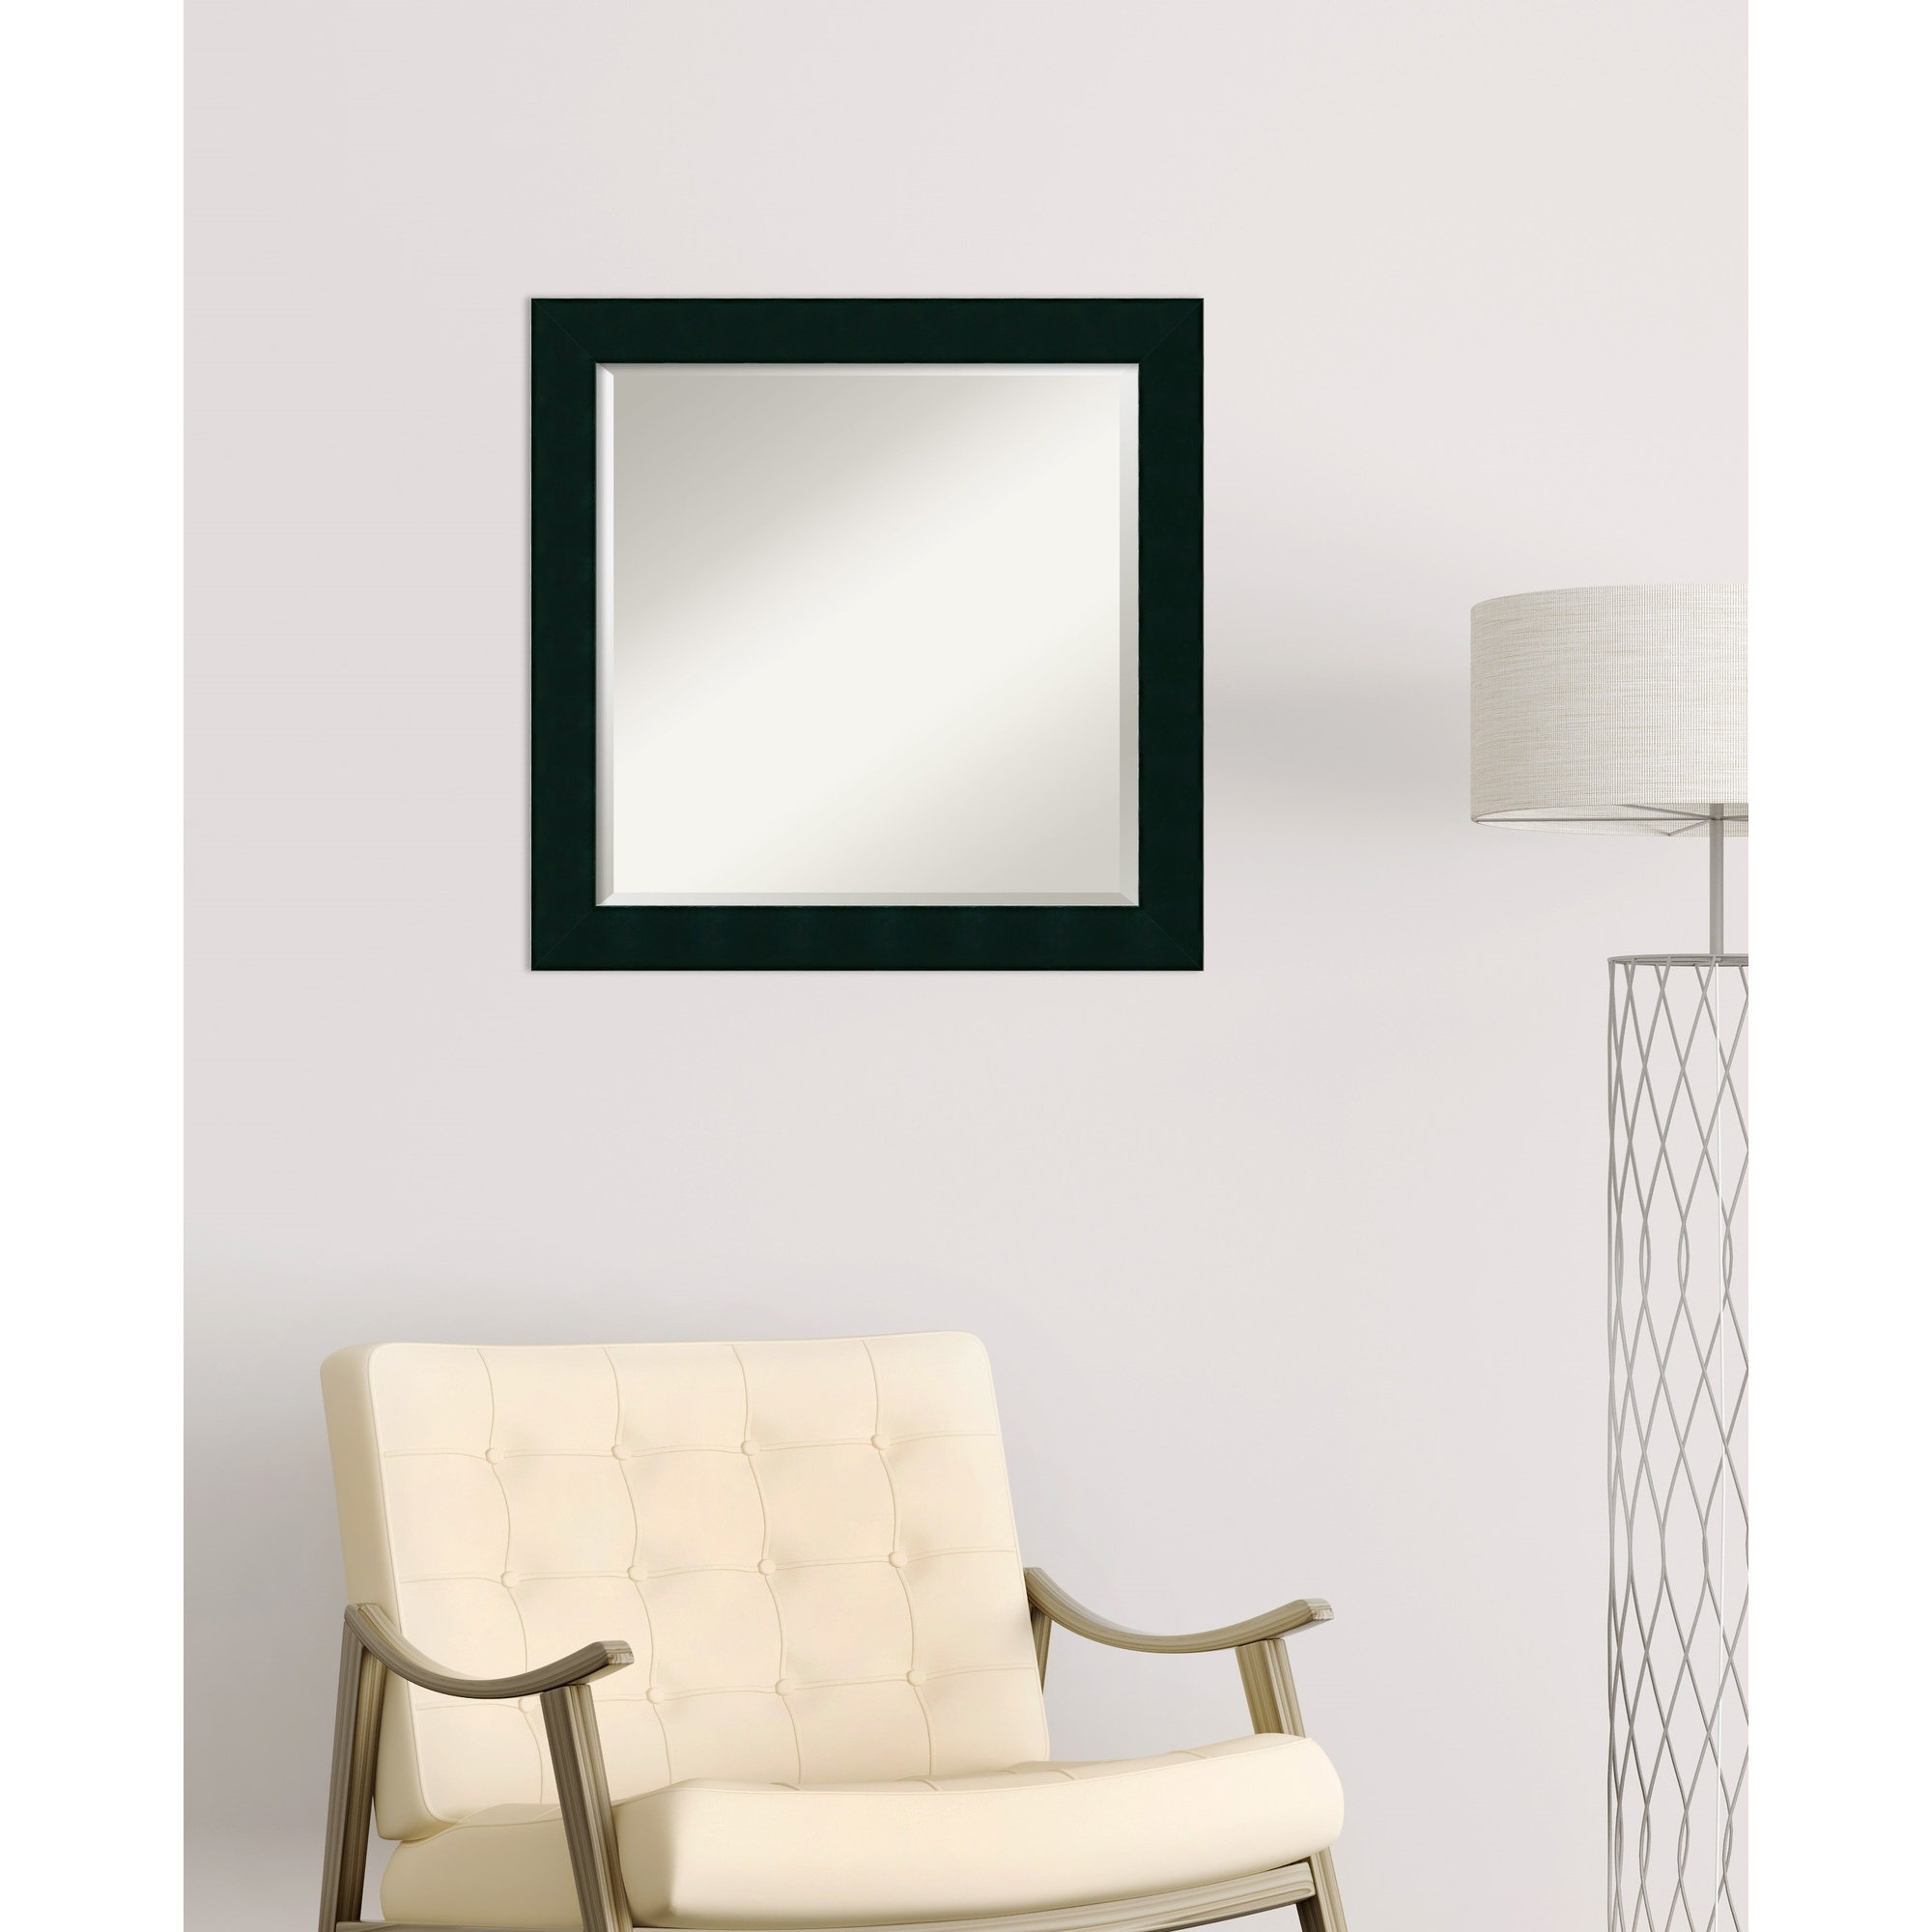 Square Grid Mirror | Wayfair With 2 Piece Priscilla Square Traditional Beveled Distressed Accent Mirror Sets (Image 16 of 20)